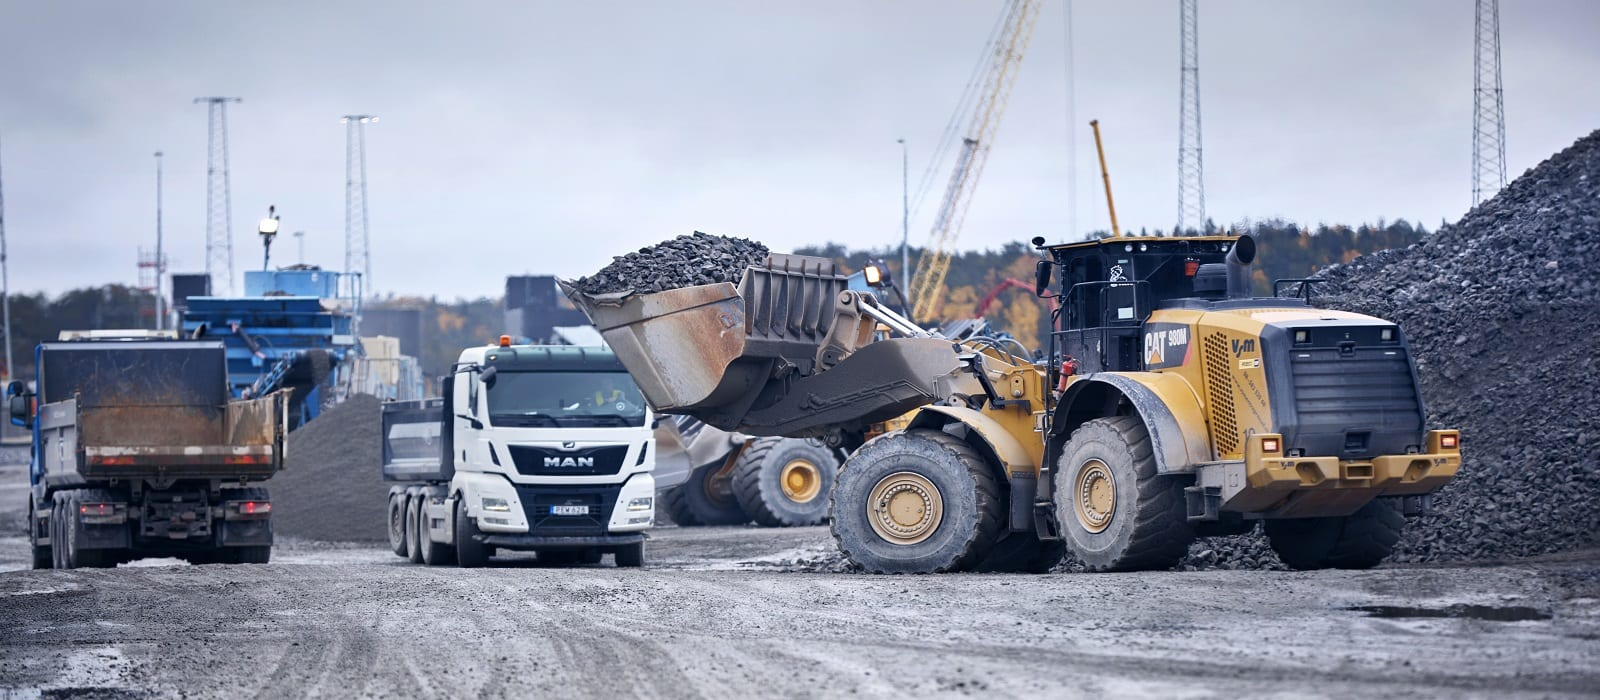 Photoshoot at a construction yard close by to Stockholm, 2019